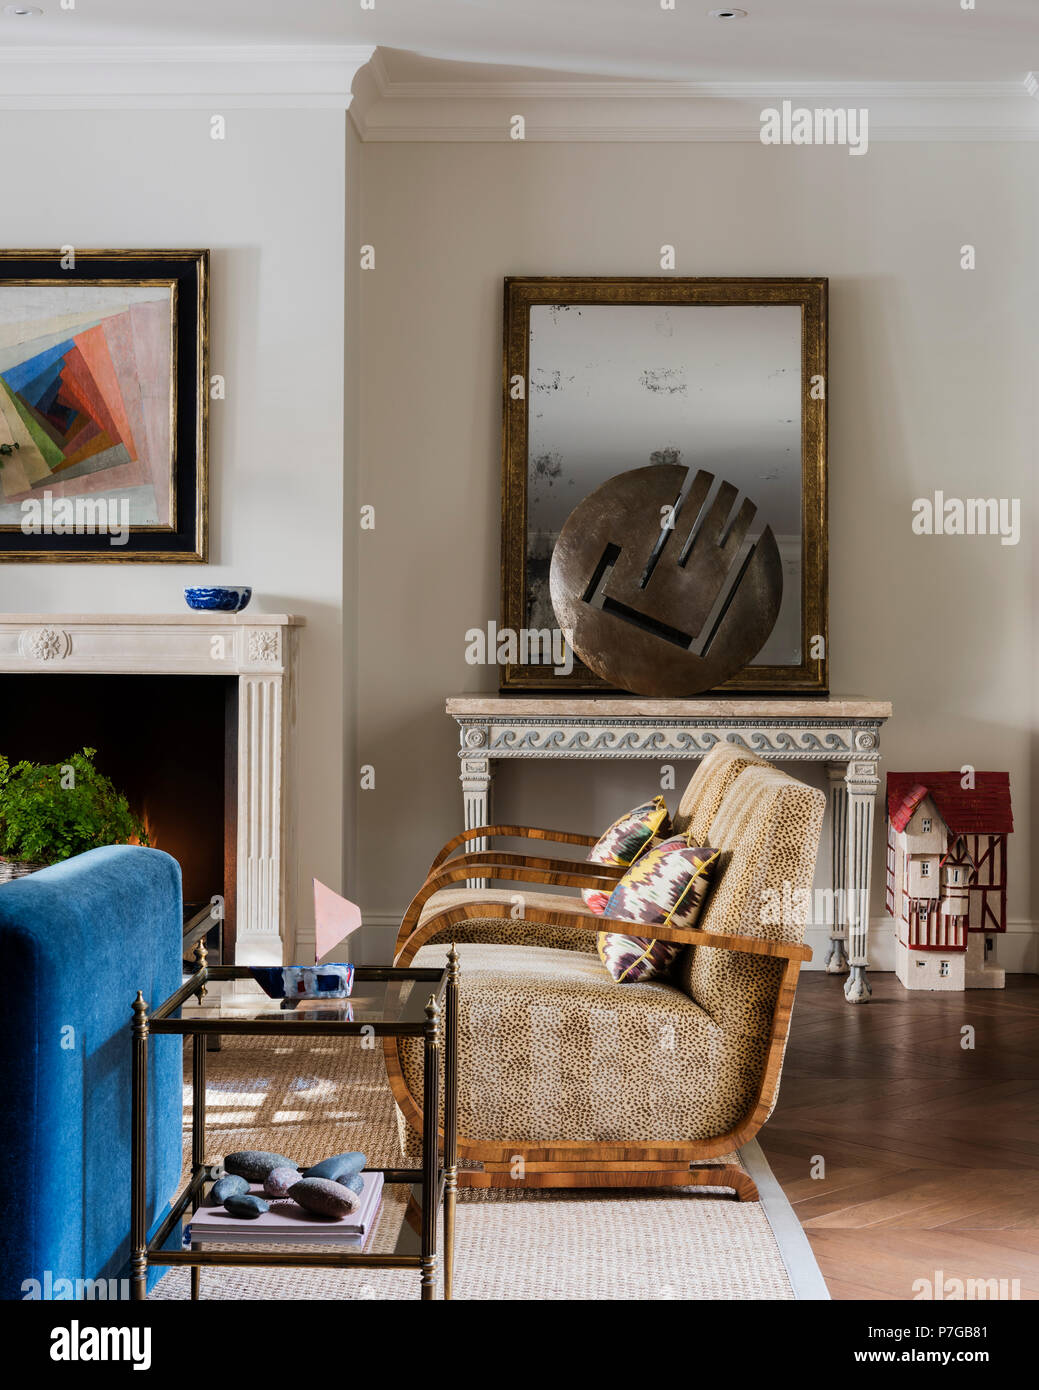 Modern armchairs in living room Stock Photo: 211187089 - Alamy